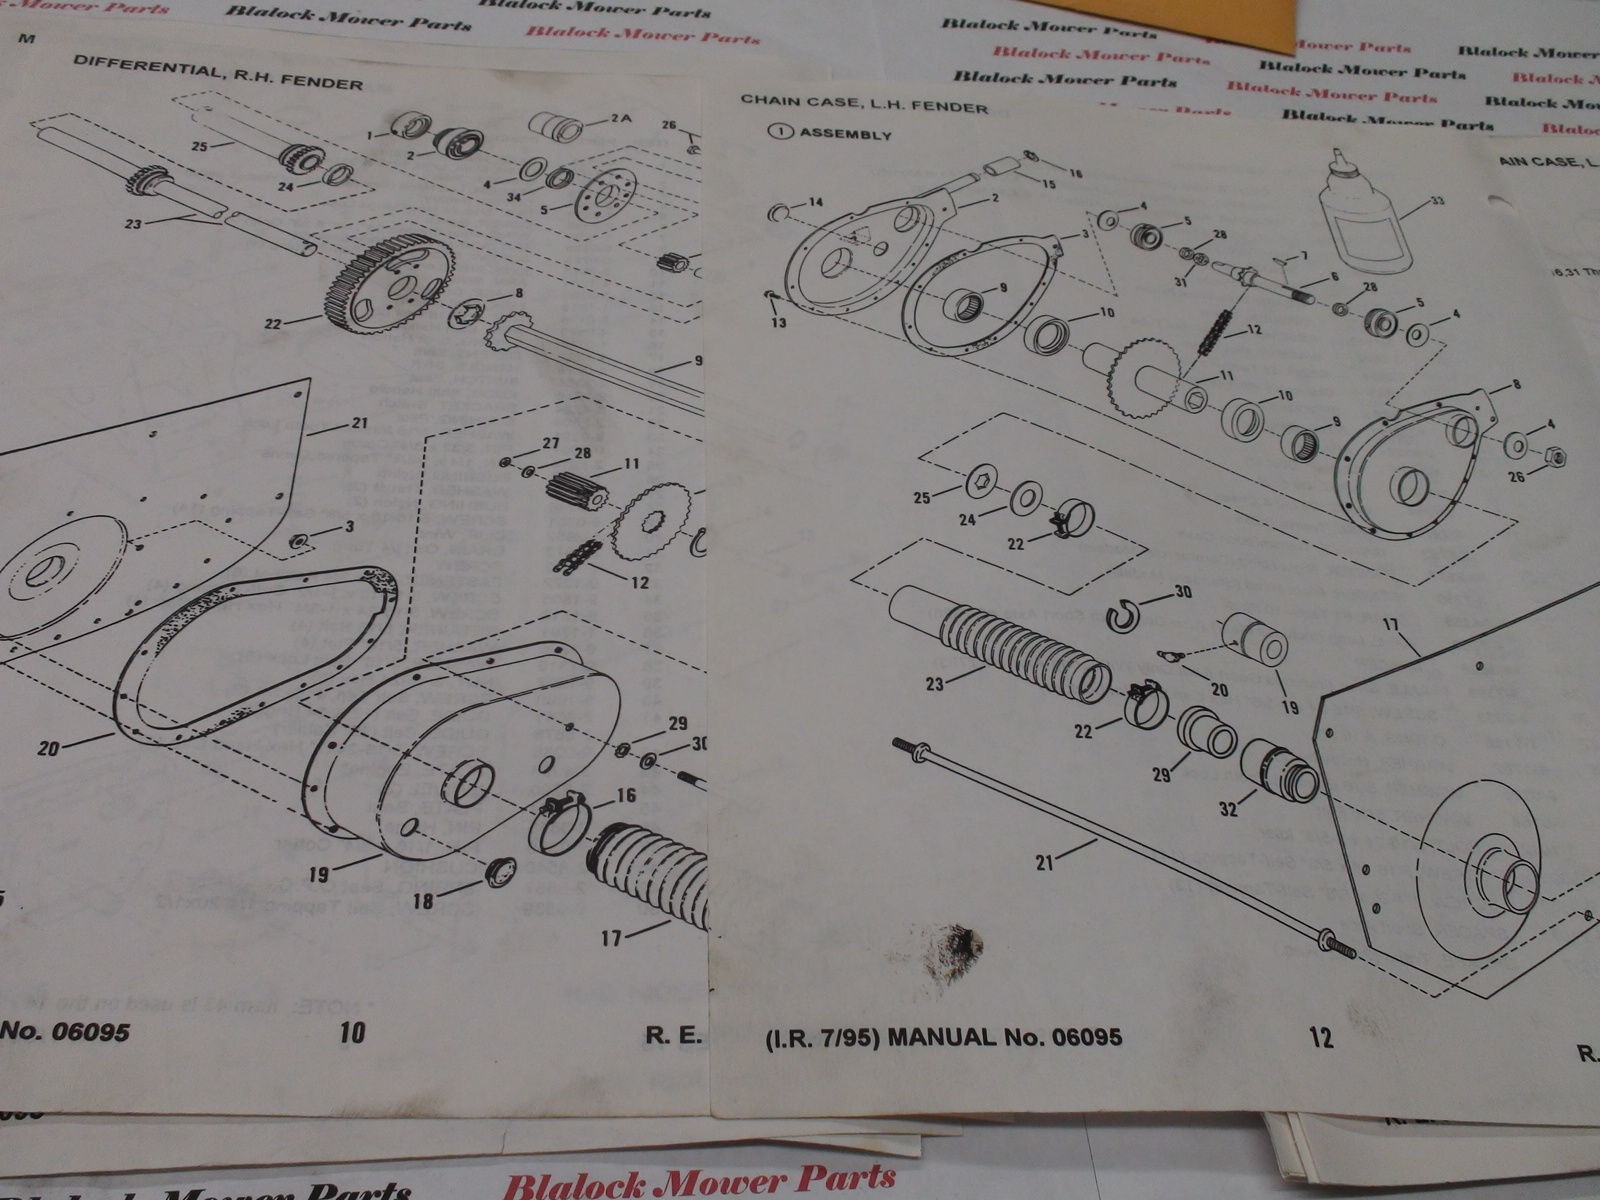 Honda Gx240 Parts Diagram Snapper Series 15 Rear Engine Rider Parts Manual Of Honda Gx240 Parts Diagram Pressure Washers